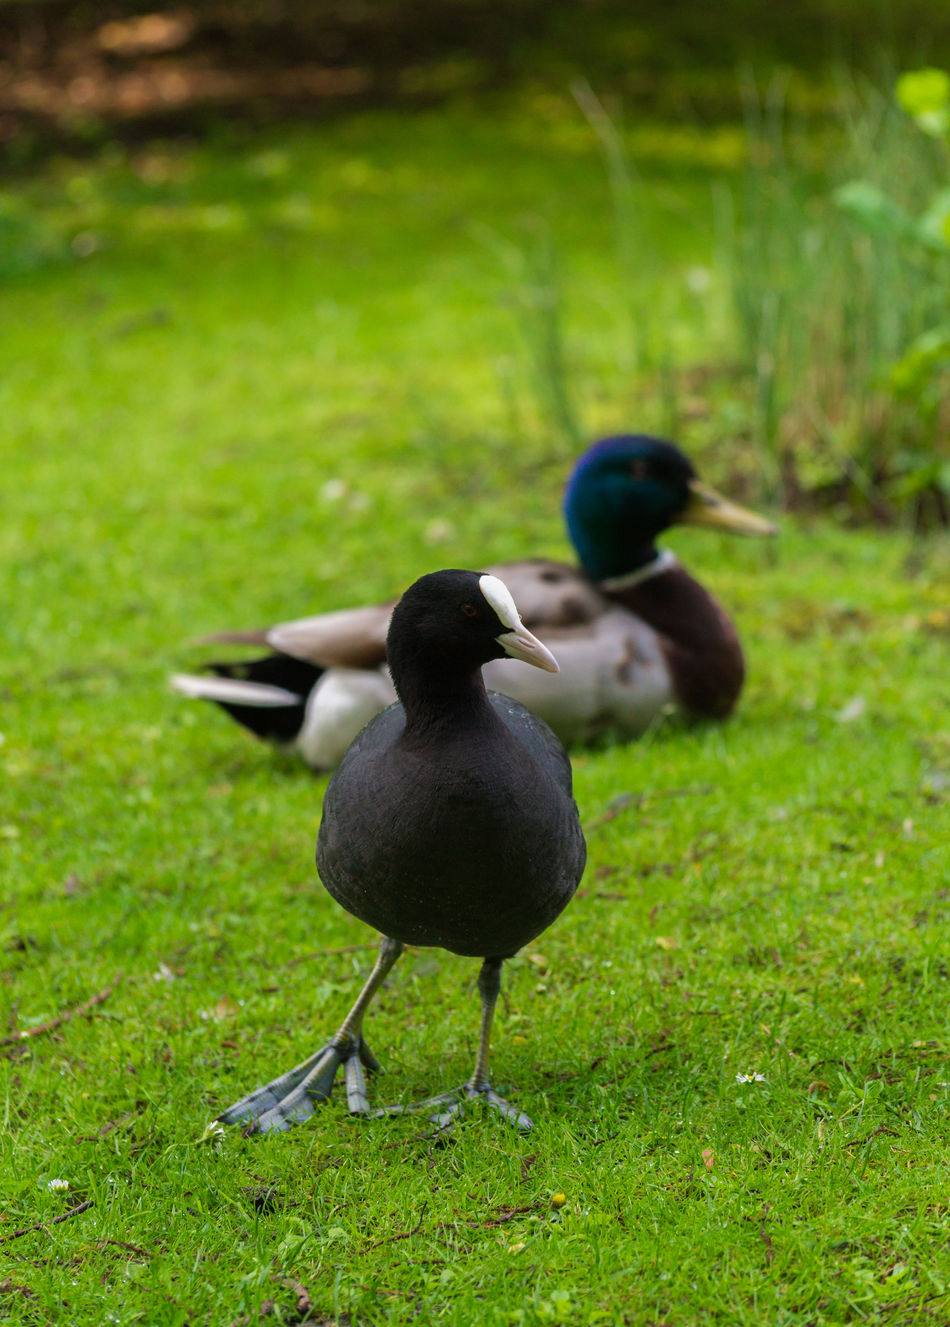 A coot stands right in the picture...😂 Animals In The Wild Background Birds Black Close-up Concept Coots Duck Fulica Funny Grass Green Meadow Moorhen Nature One Animal Outdoor Rallidae Water Birds Wildlife Blässhuhn Vogel Schwarz Wasservogel